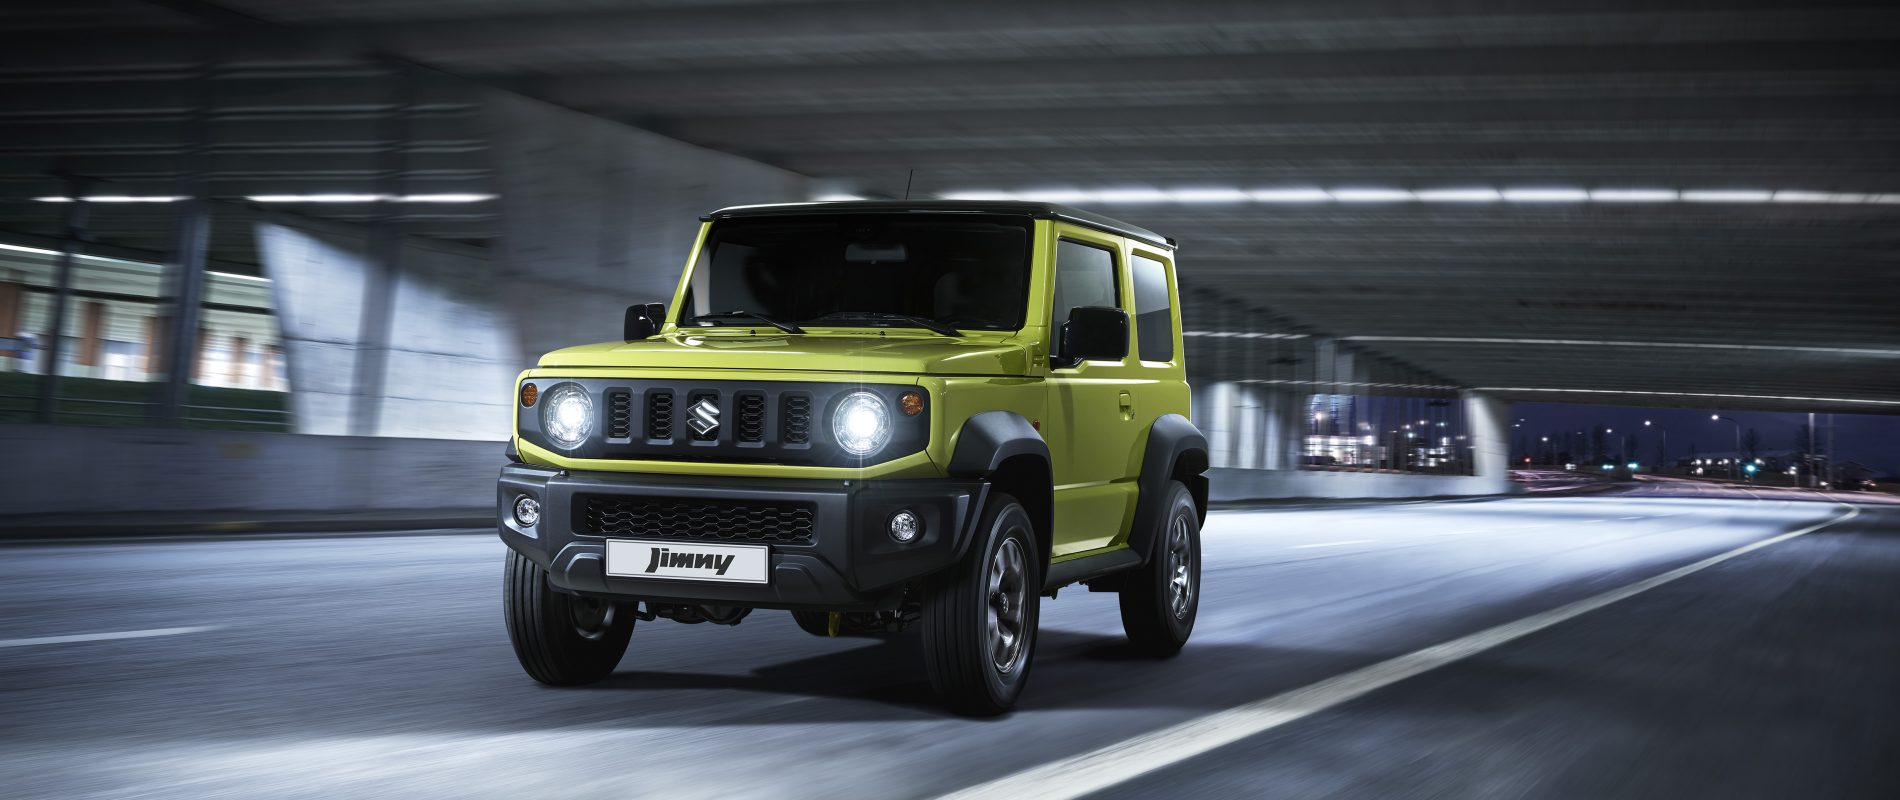 The All New Suzuki Jimny 4x4